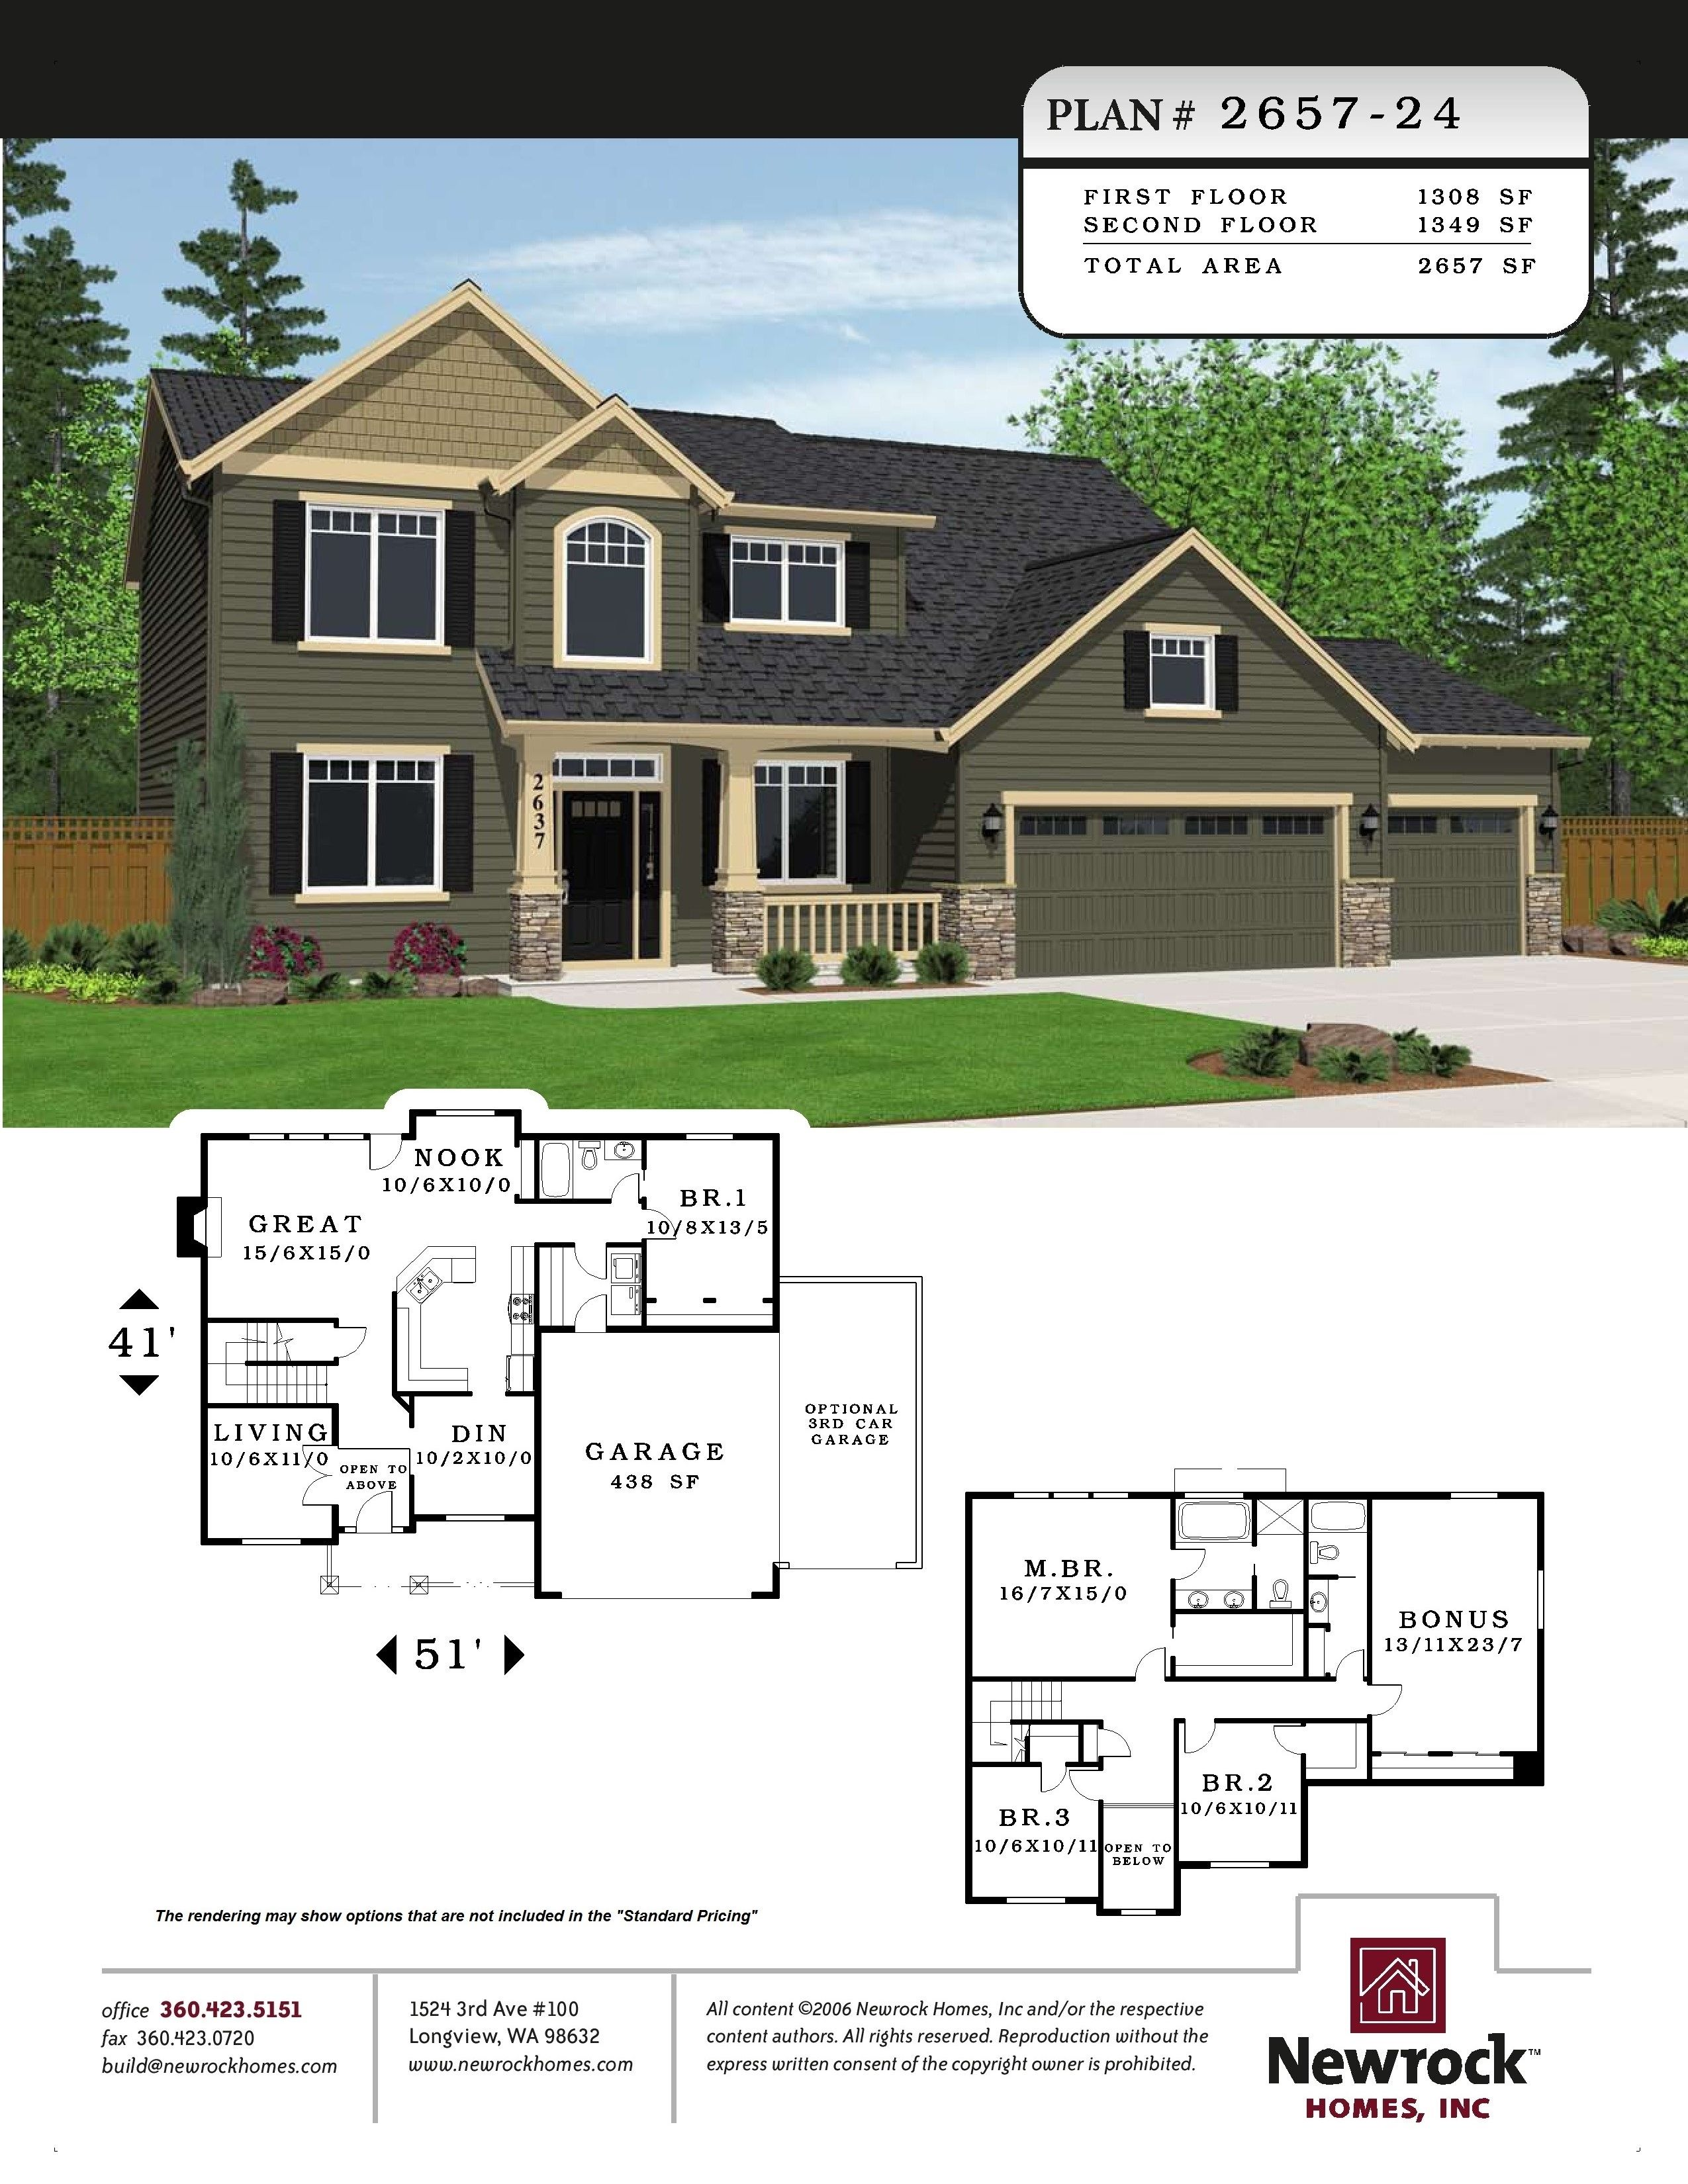 Plan 2657 24 Newrock Homes New House Plans House Plans Dream House Plans